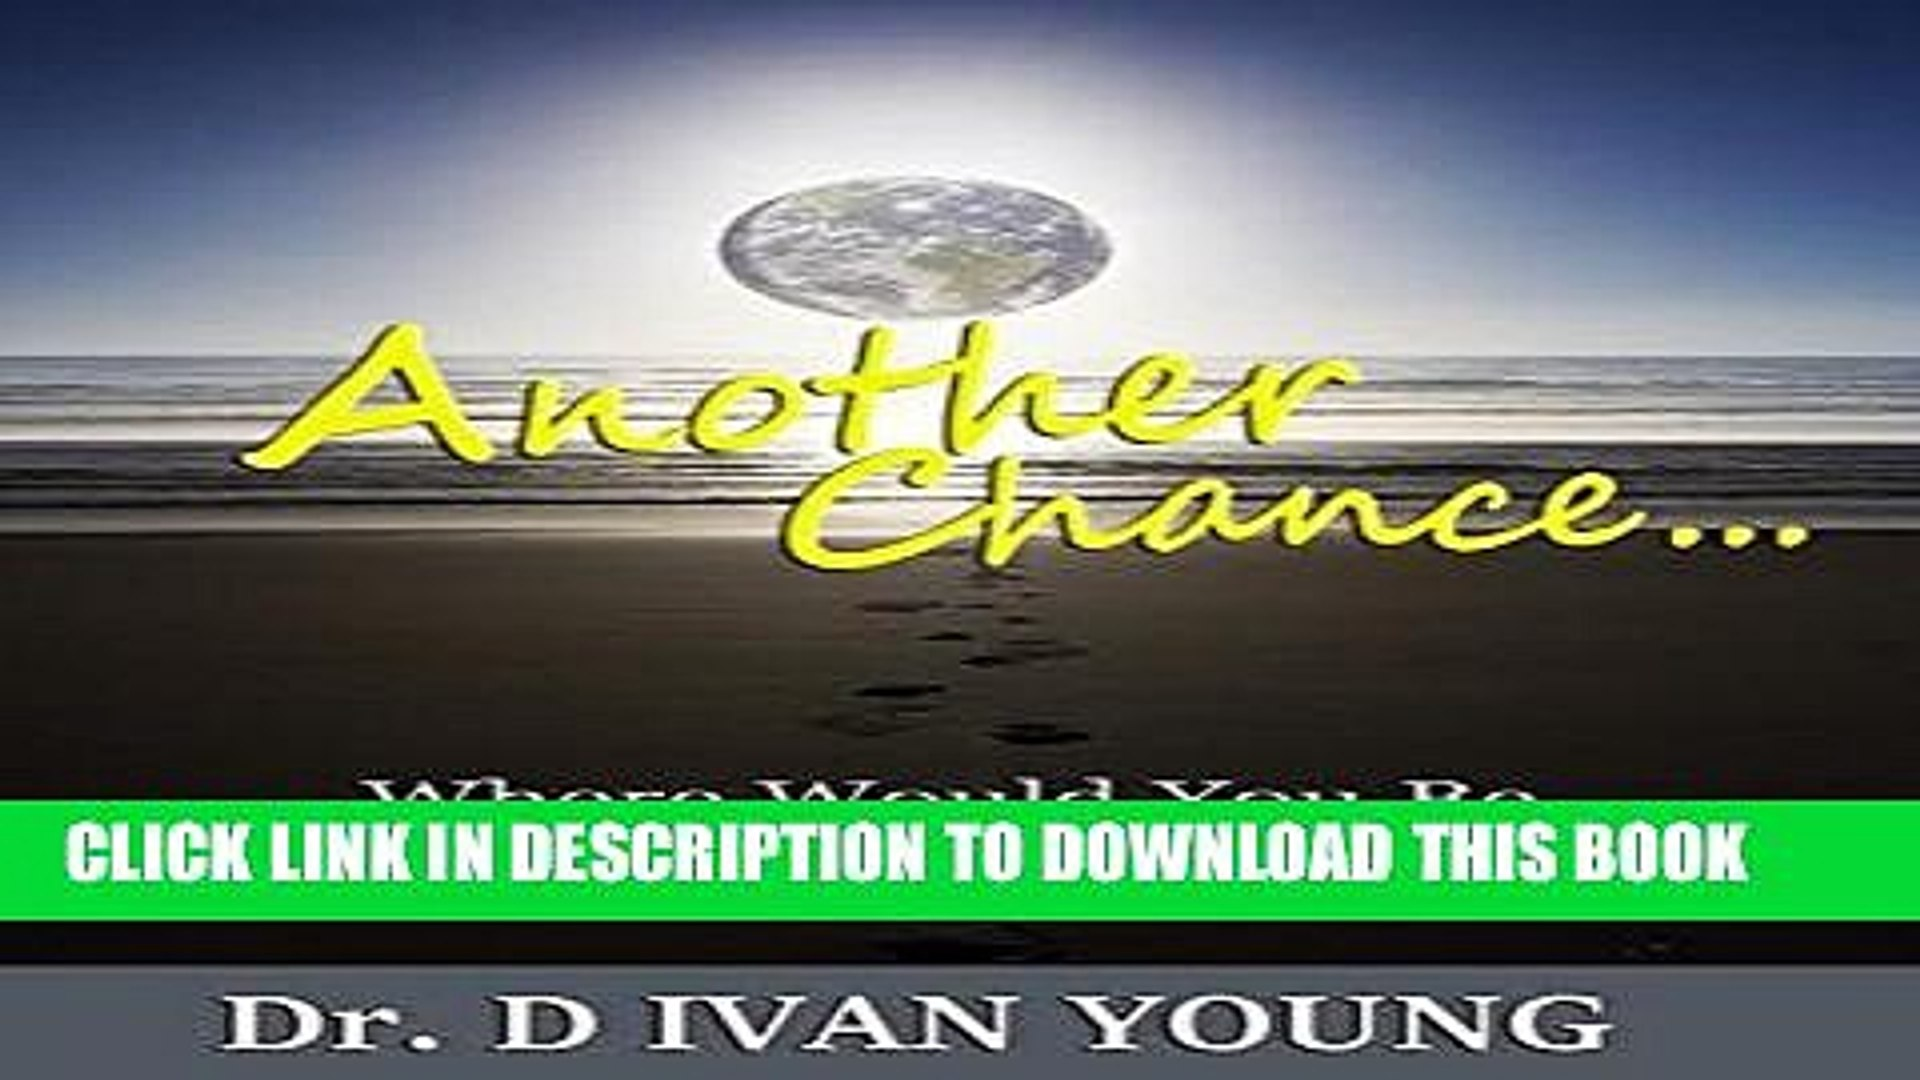 [New] Another Chance...Where Would You Be Without One! Exclusive Full Ebook